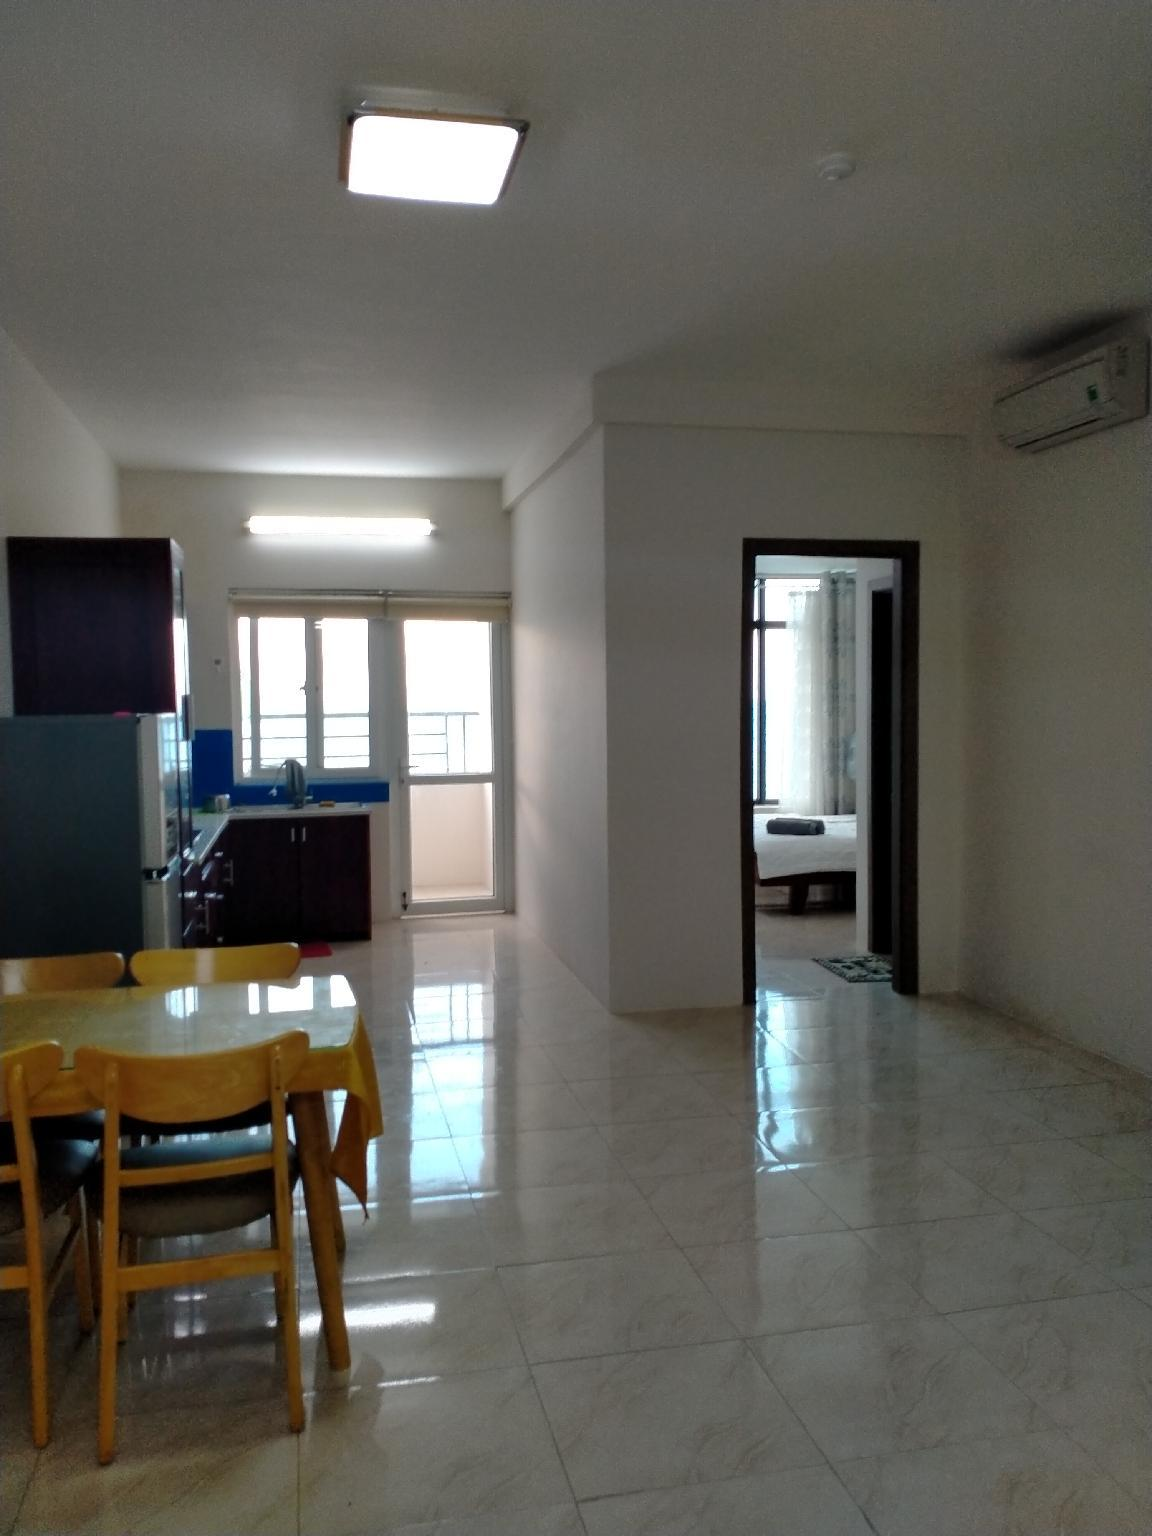 Nice View Apartment For Rent In Nha Trang Viet Nam